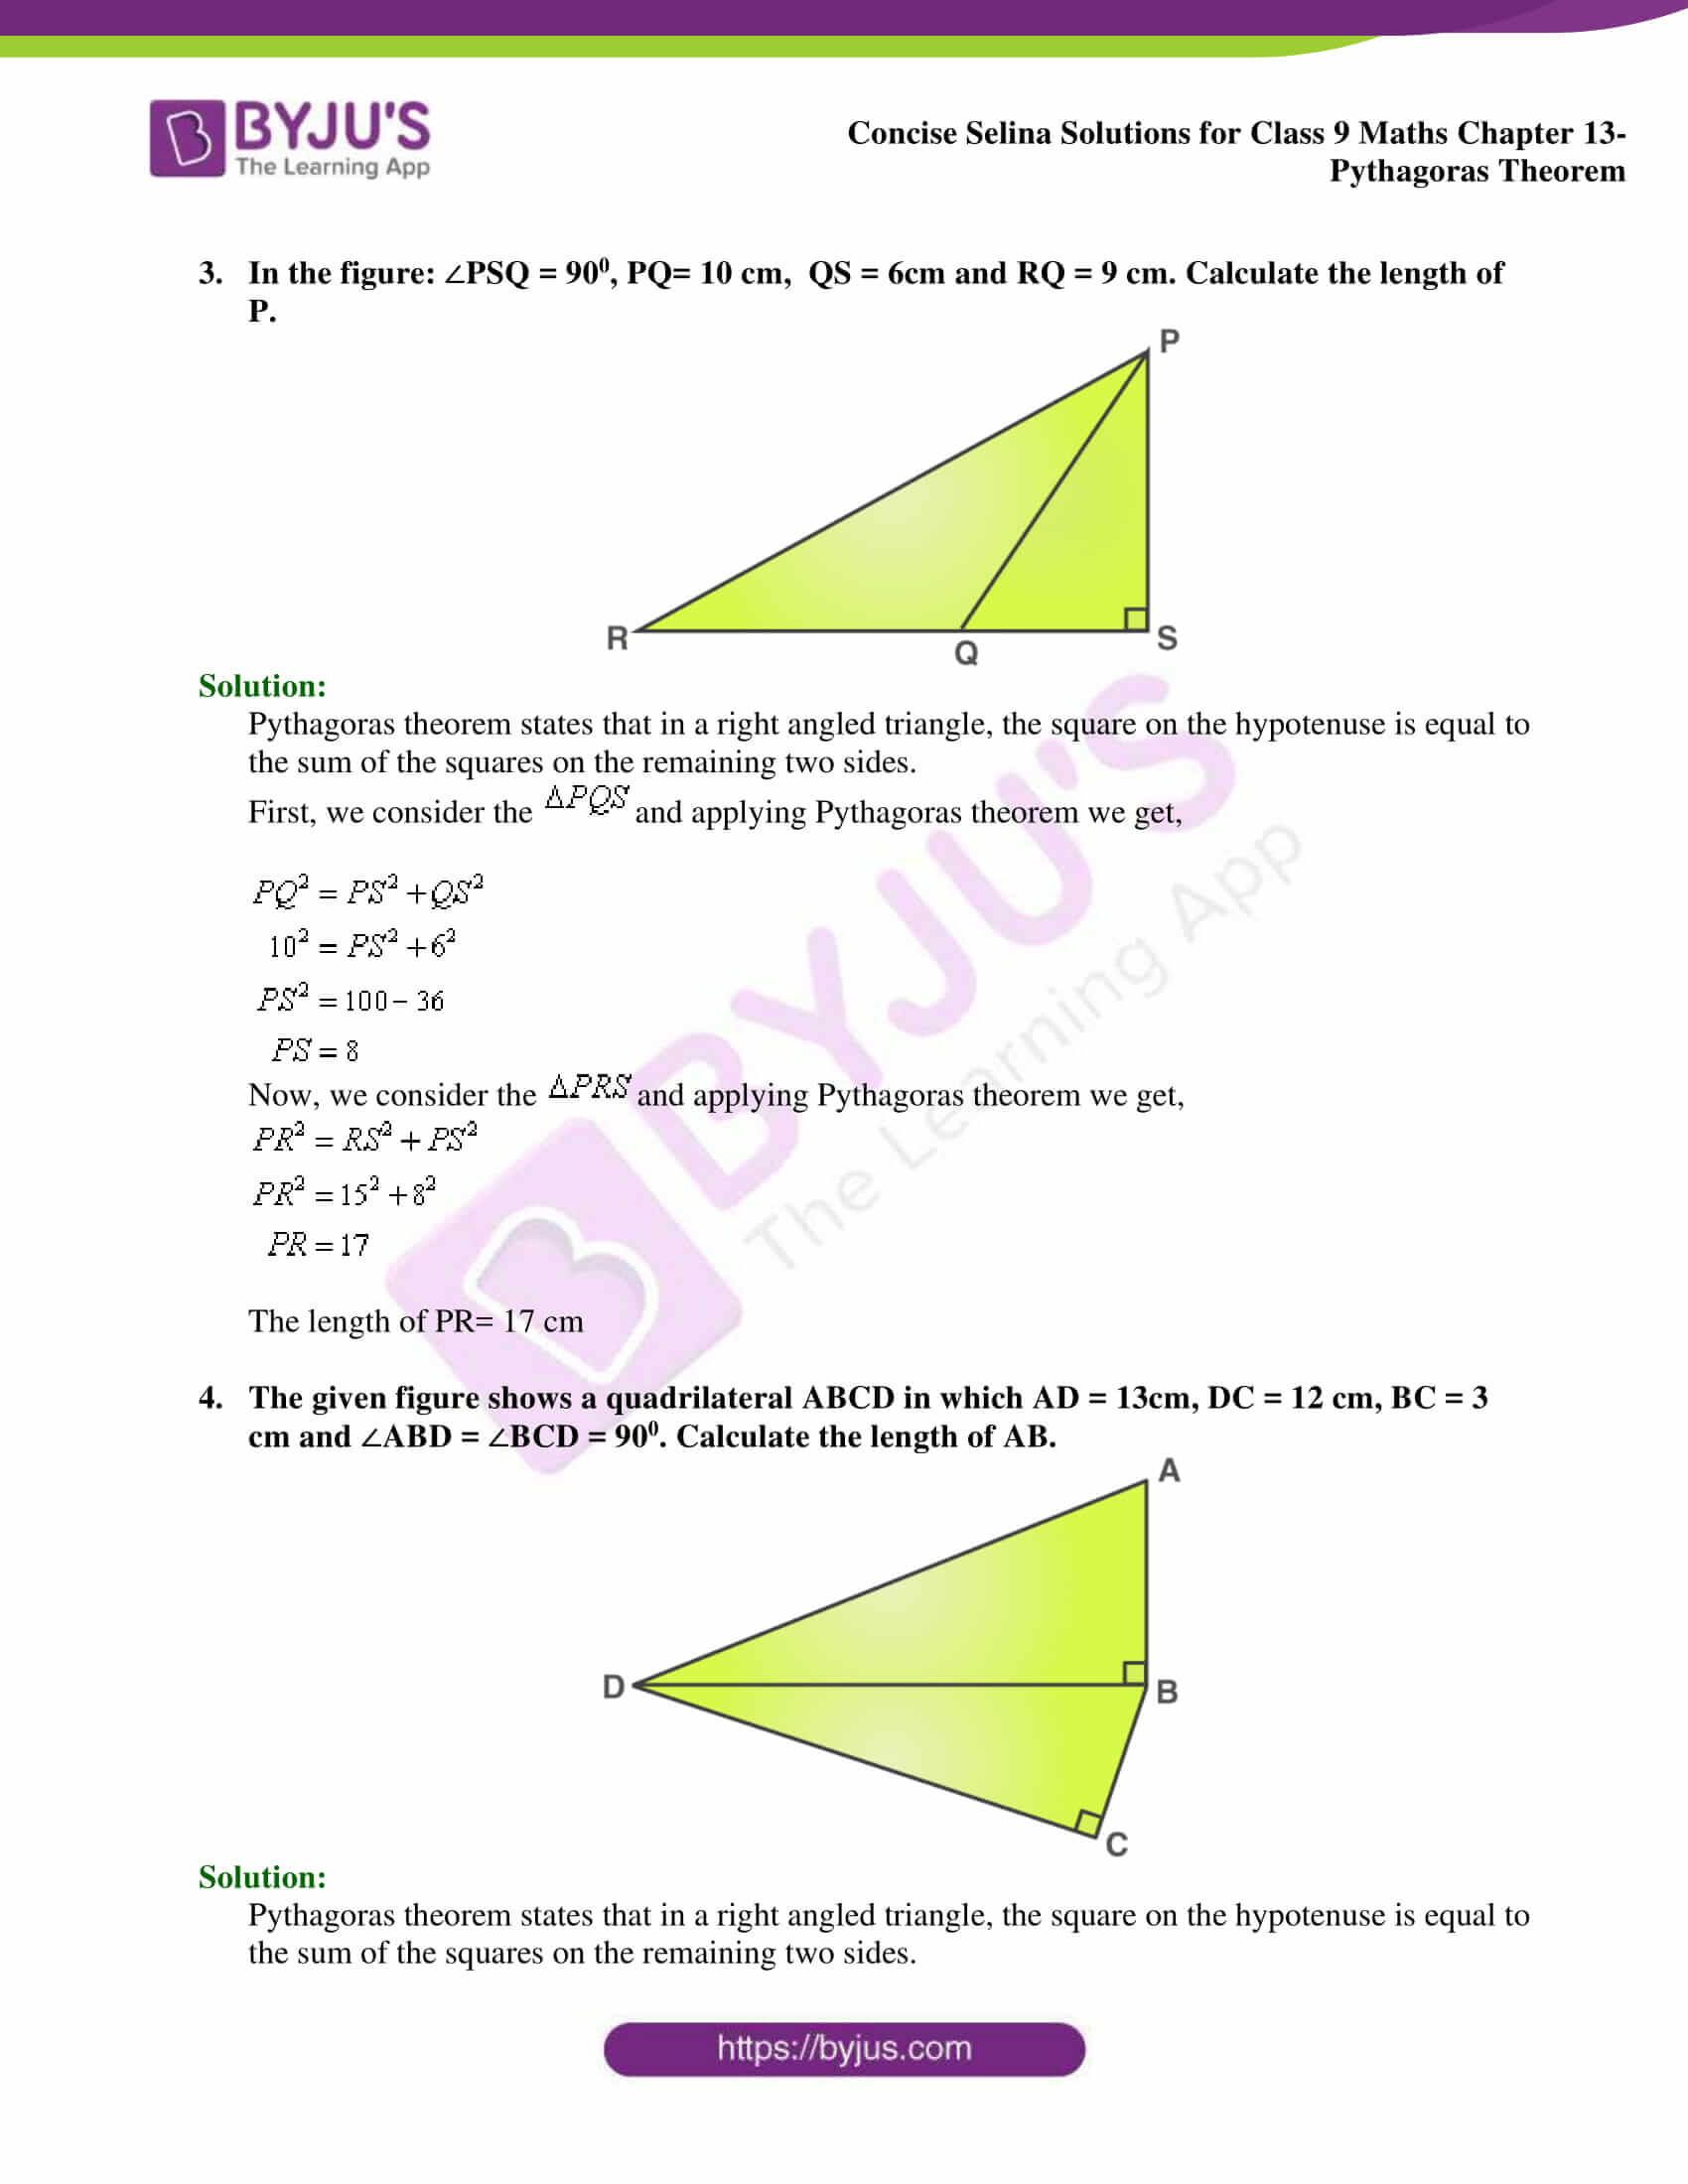 selina Solutions for Class 9 Maths Chapter 13 part 02